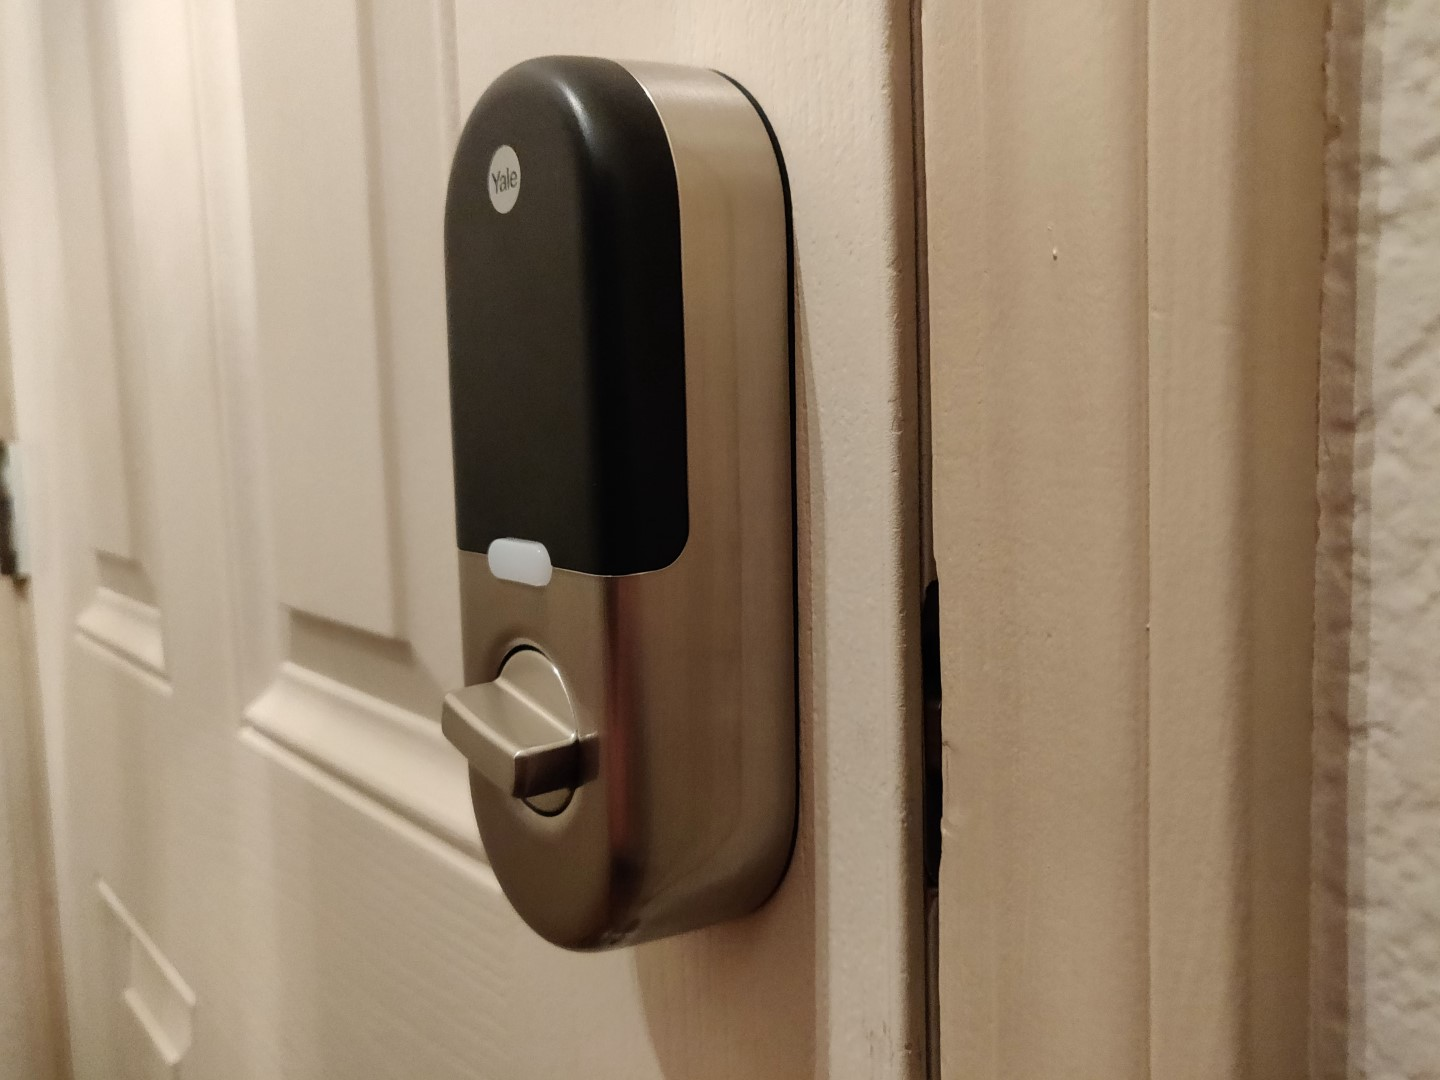 Nest x Yale Smart Lock review: Buggy, but wonderfully